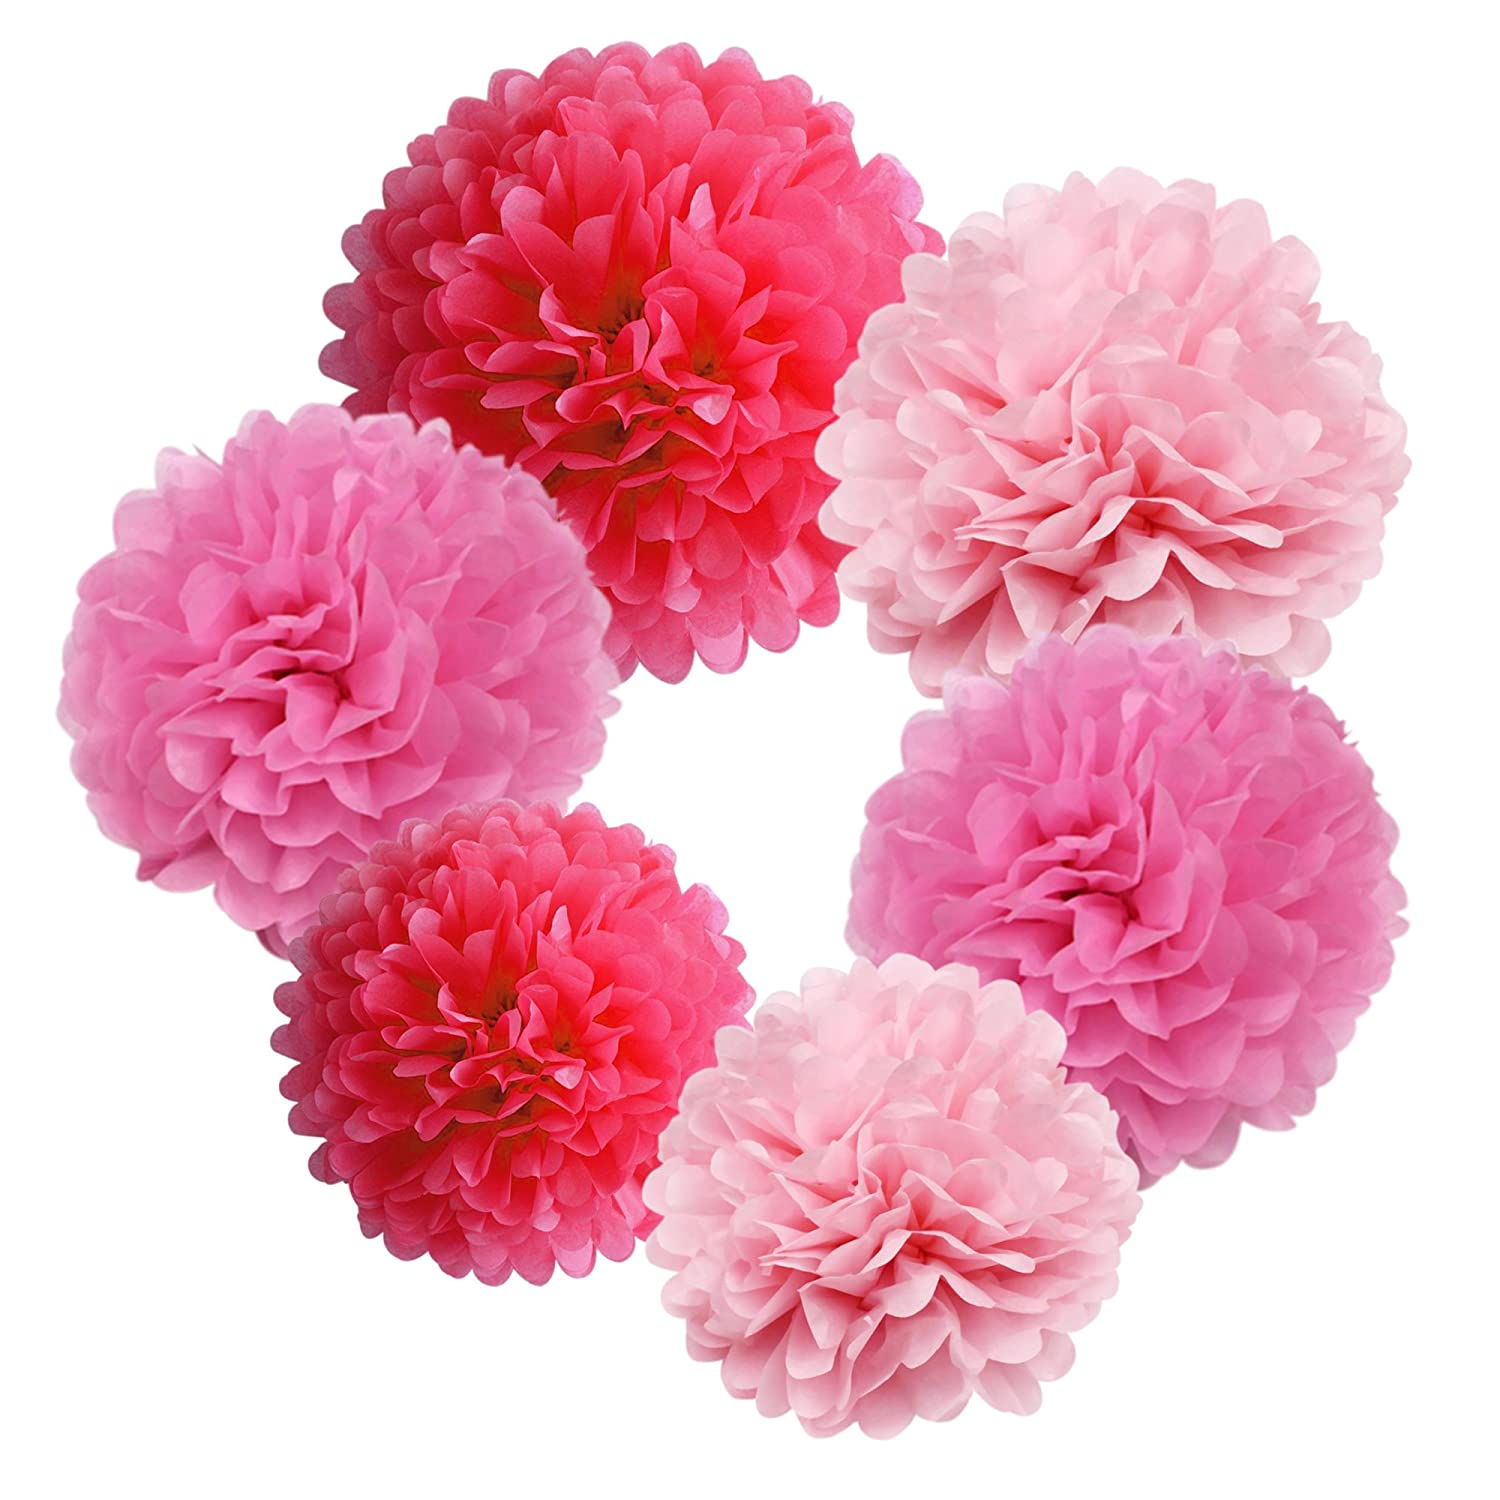 BELLE VOUS 13 Piece Pink Tissue Paper Pom Pom Decorations Set with Banner Various Size Small, Medium & Large Pom Poms - Large Pompoms for Birthday Parties, Weddings, Baby Showers & Gender Reveal